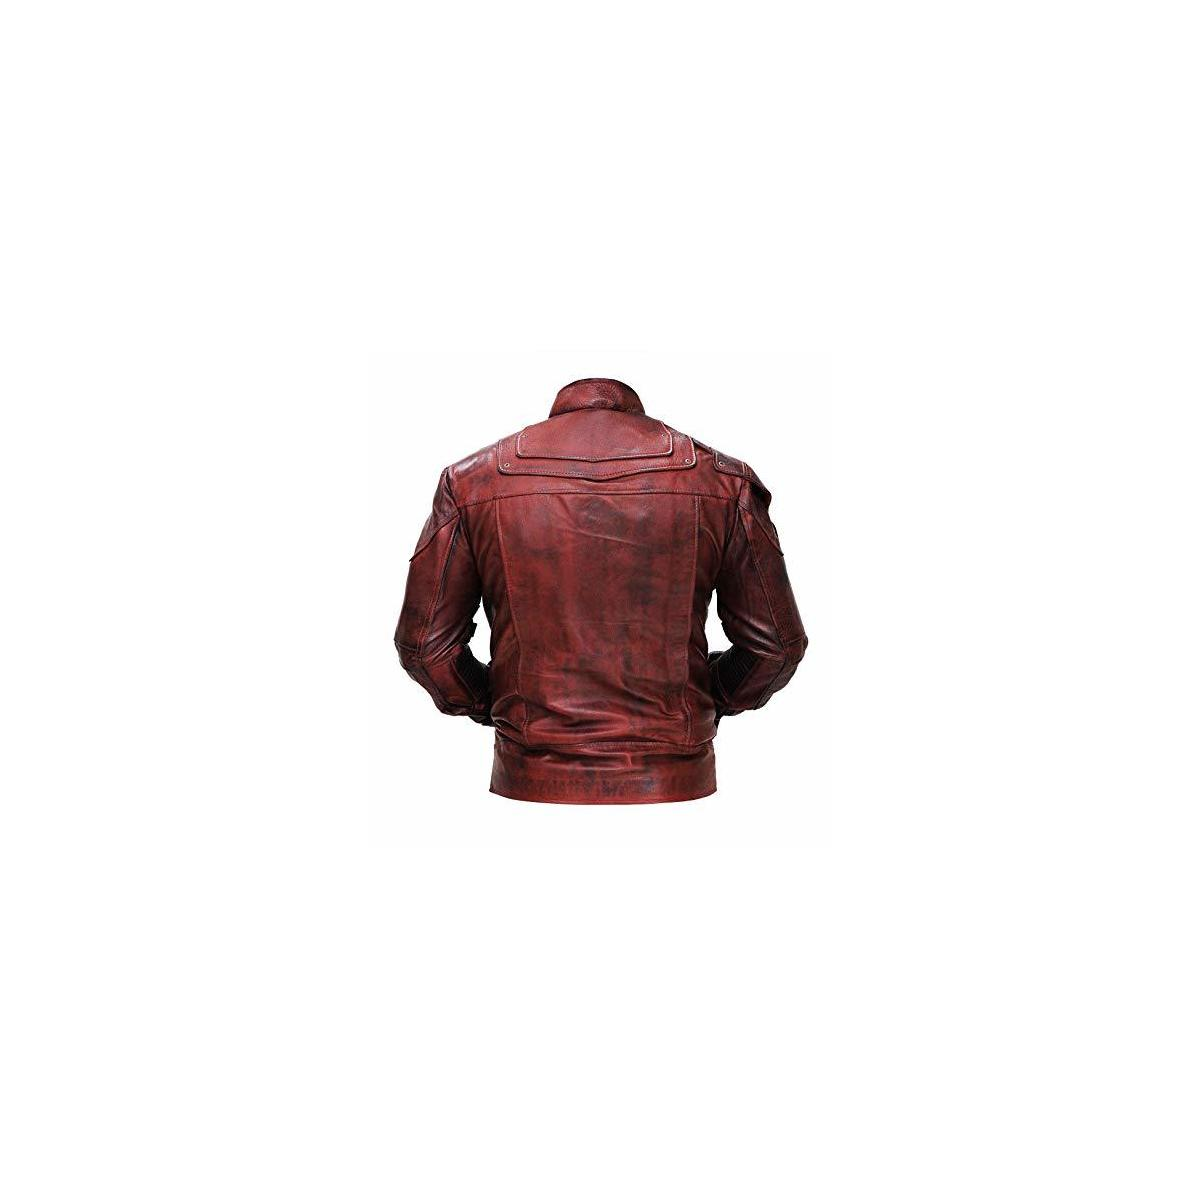 STOREJEES Slim Fit Maroon Distressed Style Synthetic Leather Jacket Biker Costumes for Men